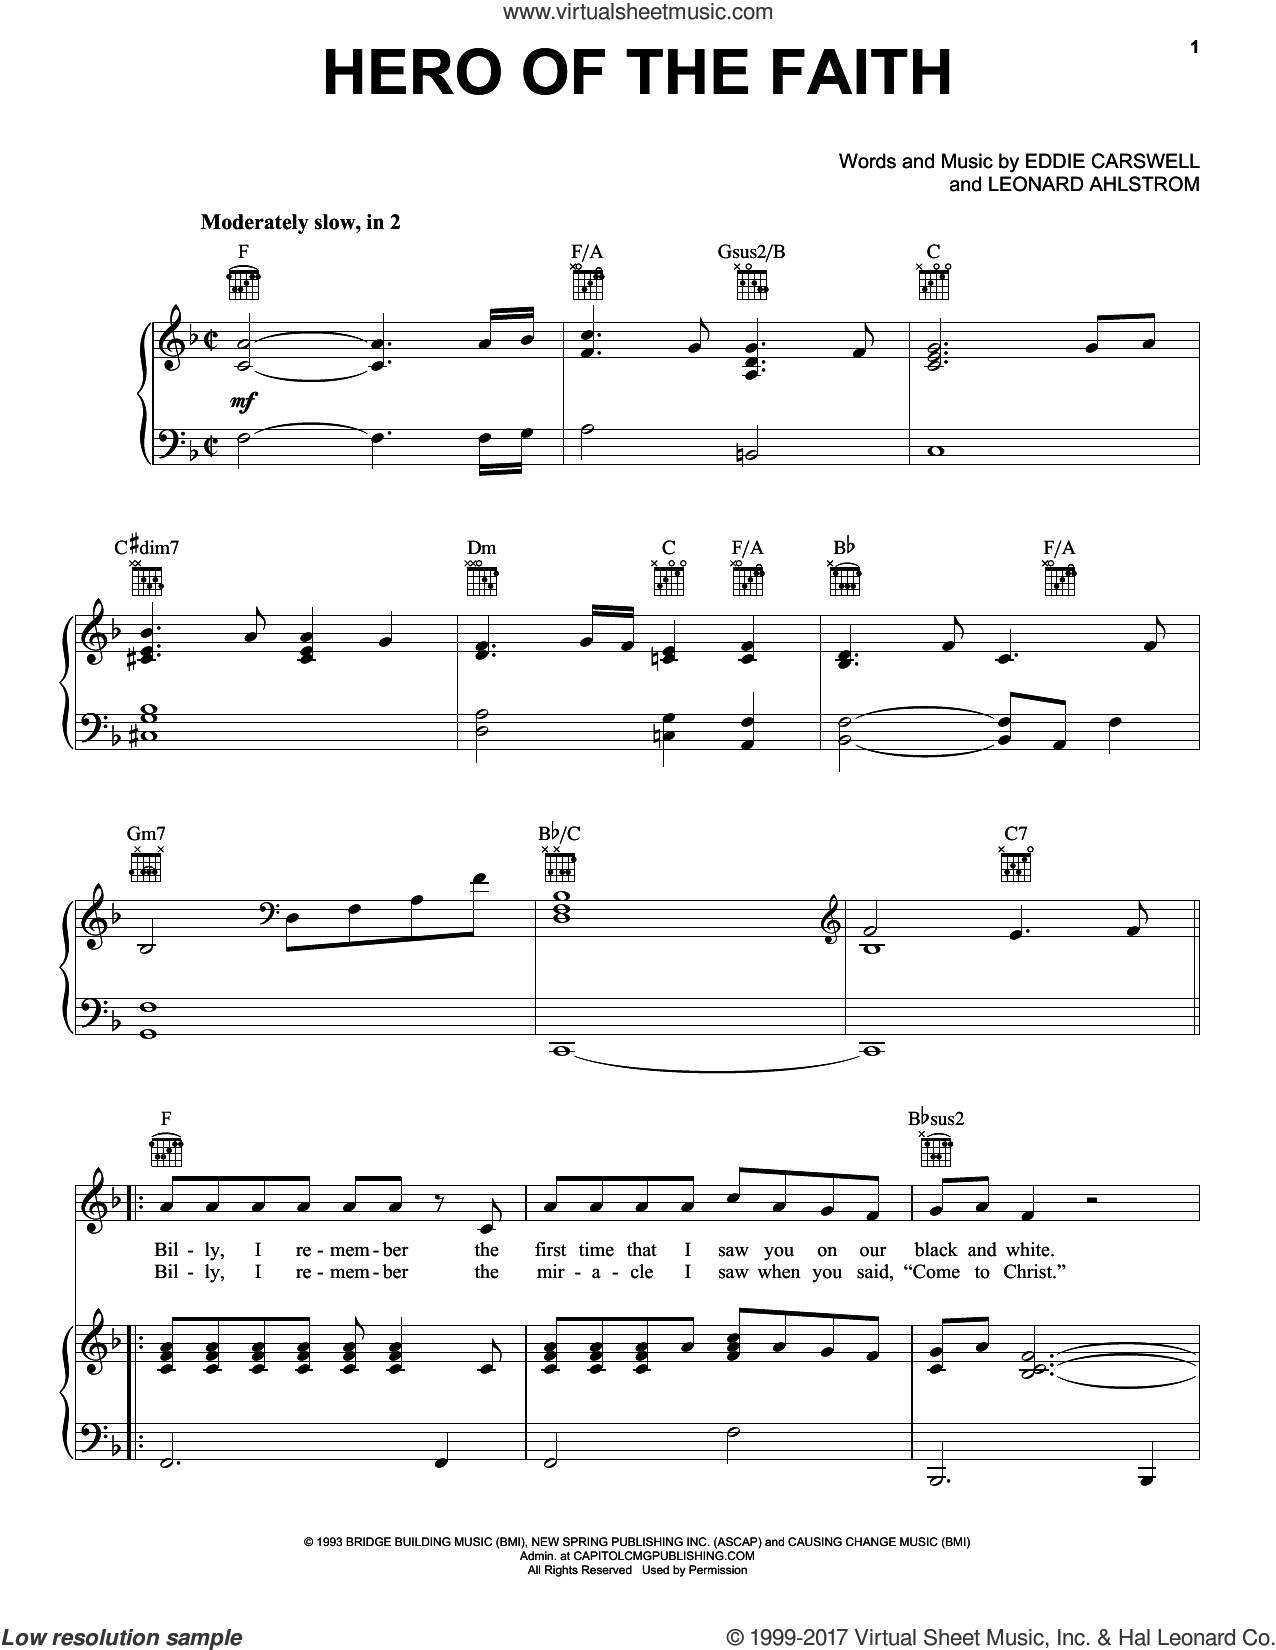 Hero Of The Faith sheet music for voice, piano or guitar by Leonard Ahlstrom, Newsong and Eddie Carswell. Score Image Preview.